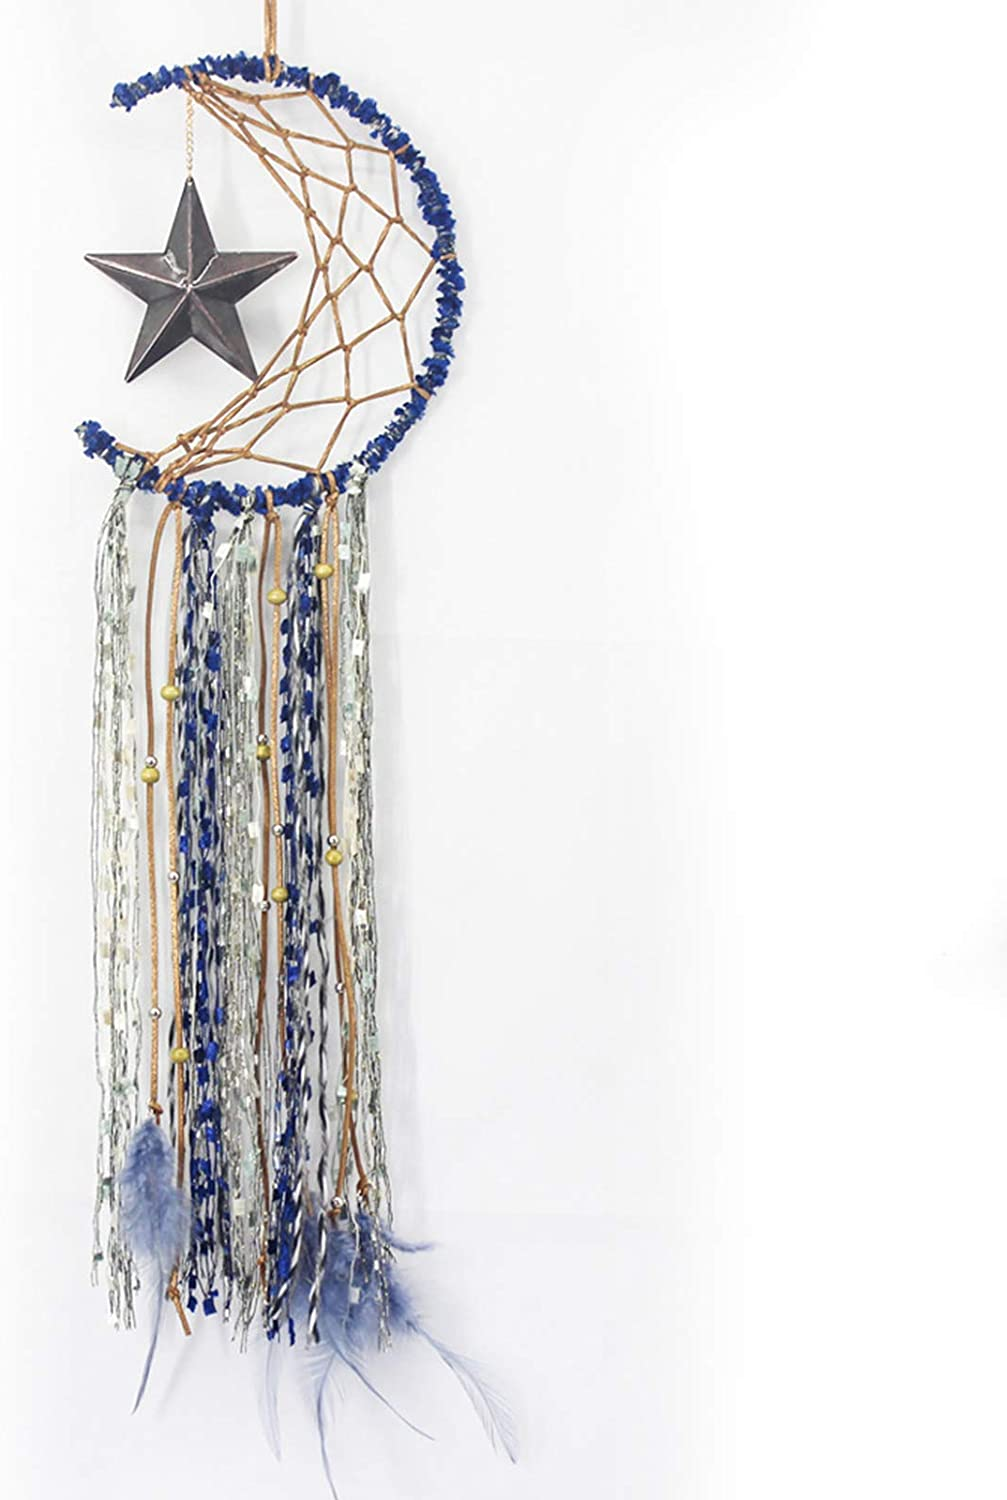 Dream Catcher - Handmade Dreamcatcher Moon Star Hanging Ornament Decor with Feather for Room, Home, Wall, Festival Gifts(Blue)